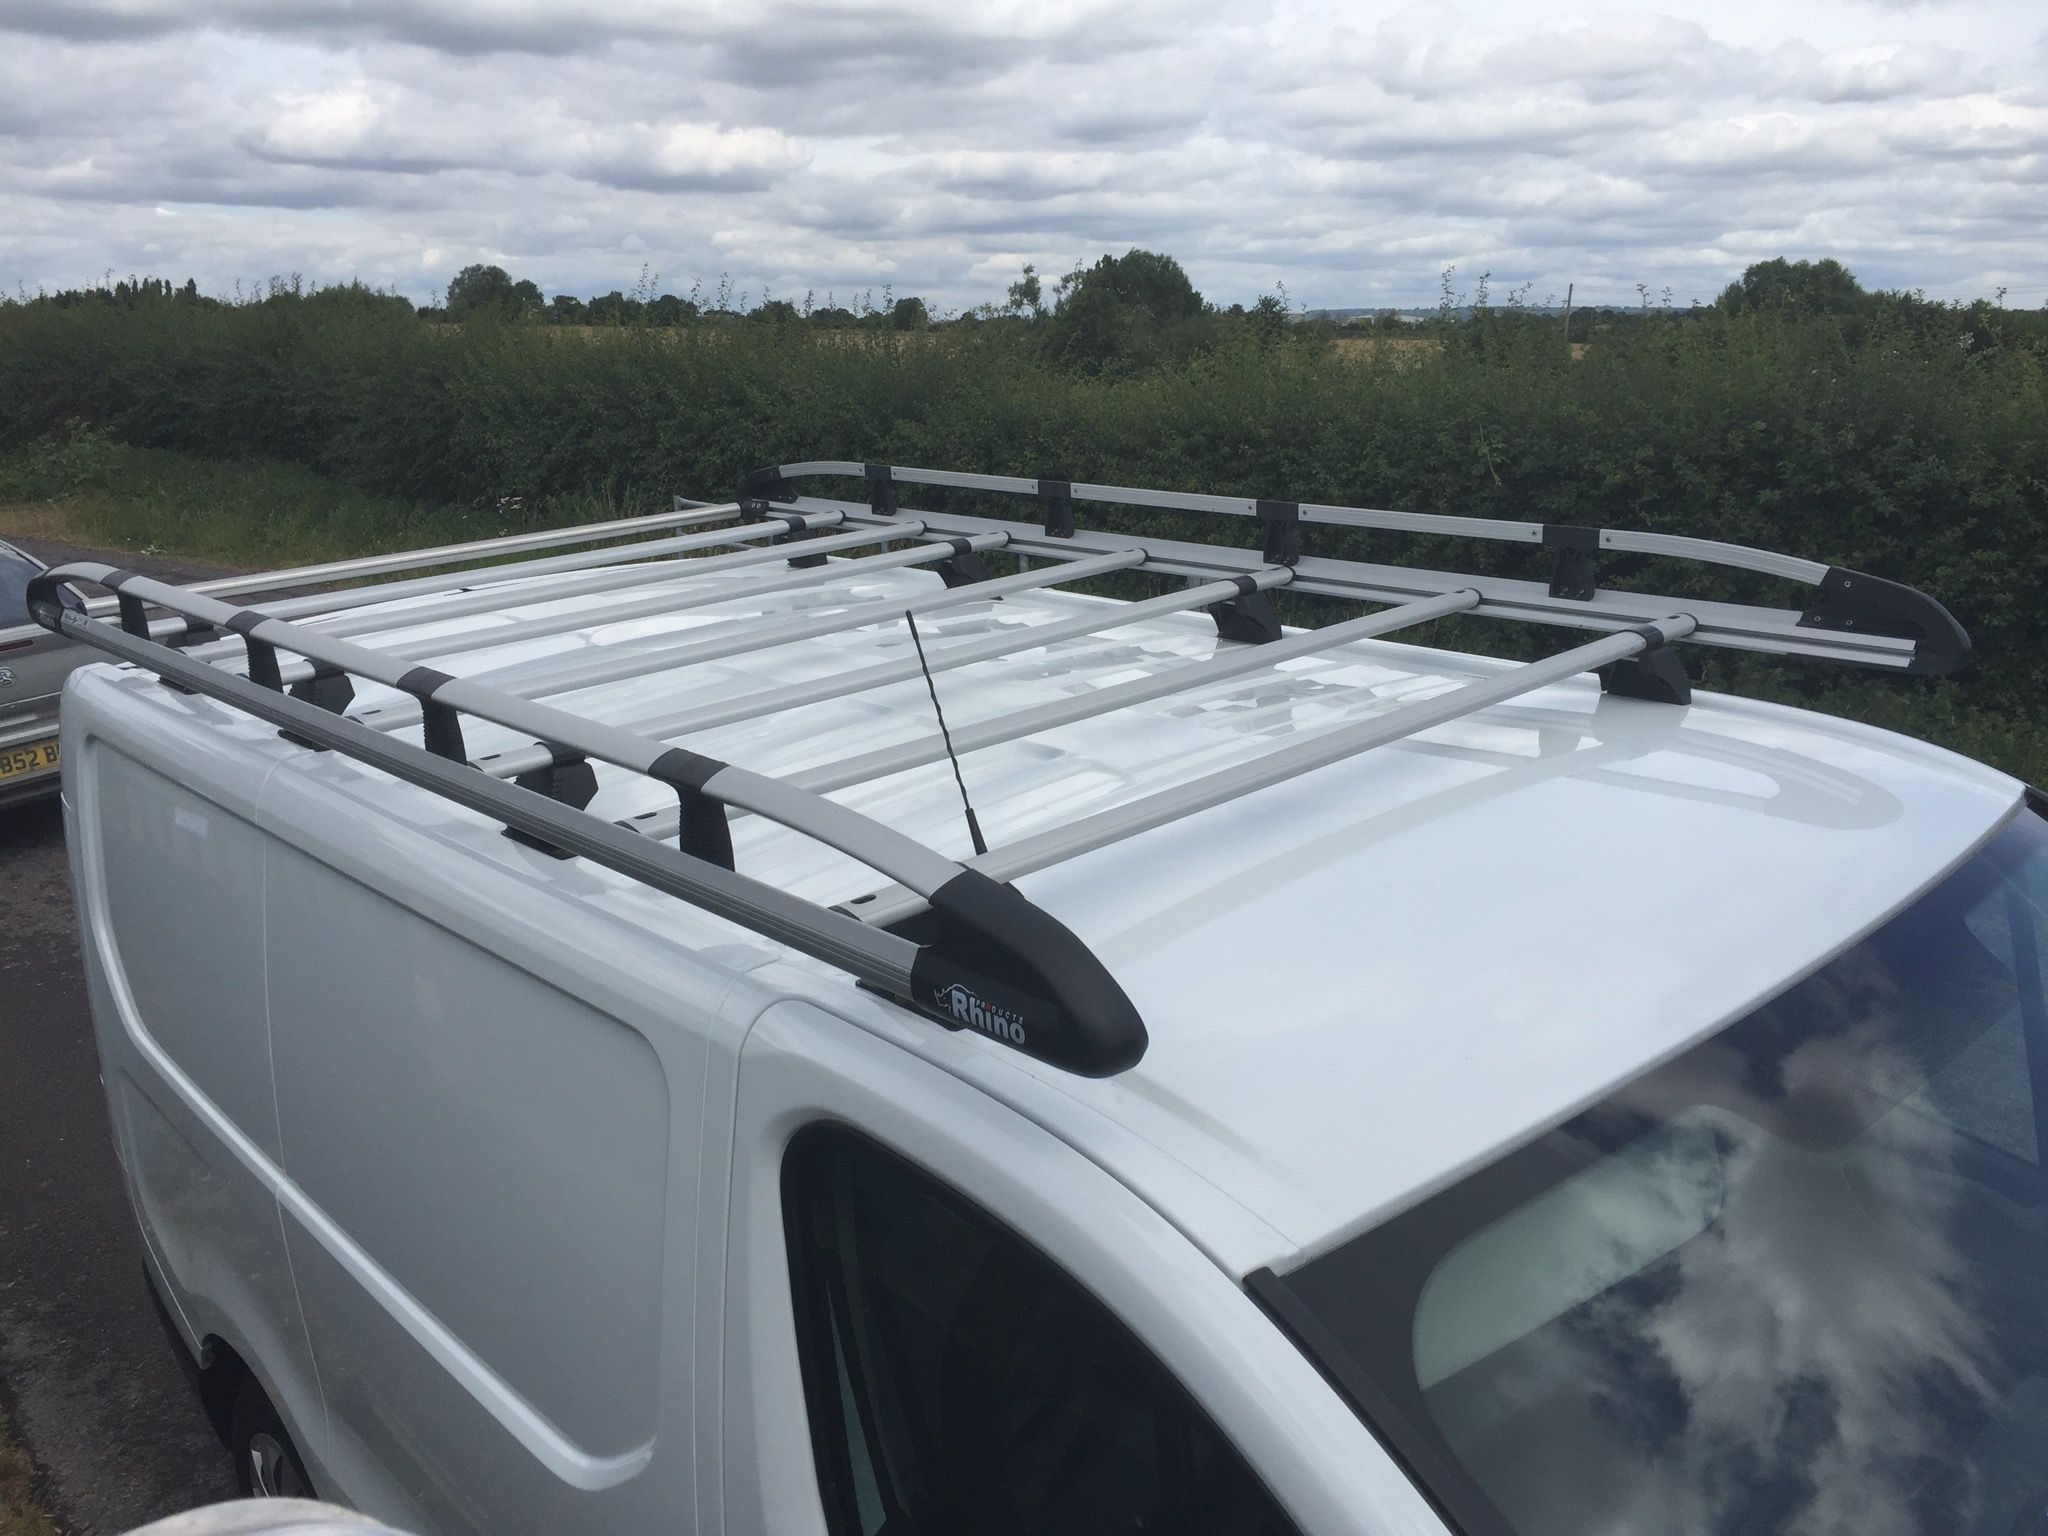 them slide pioneer gear down is simple accessories onto platform vehicle the rack from roofracks easily roof tie online your store to and racks rhino loading unloading